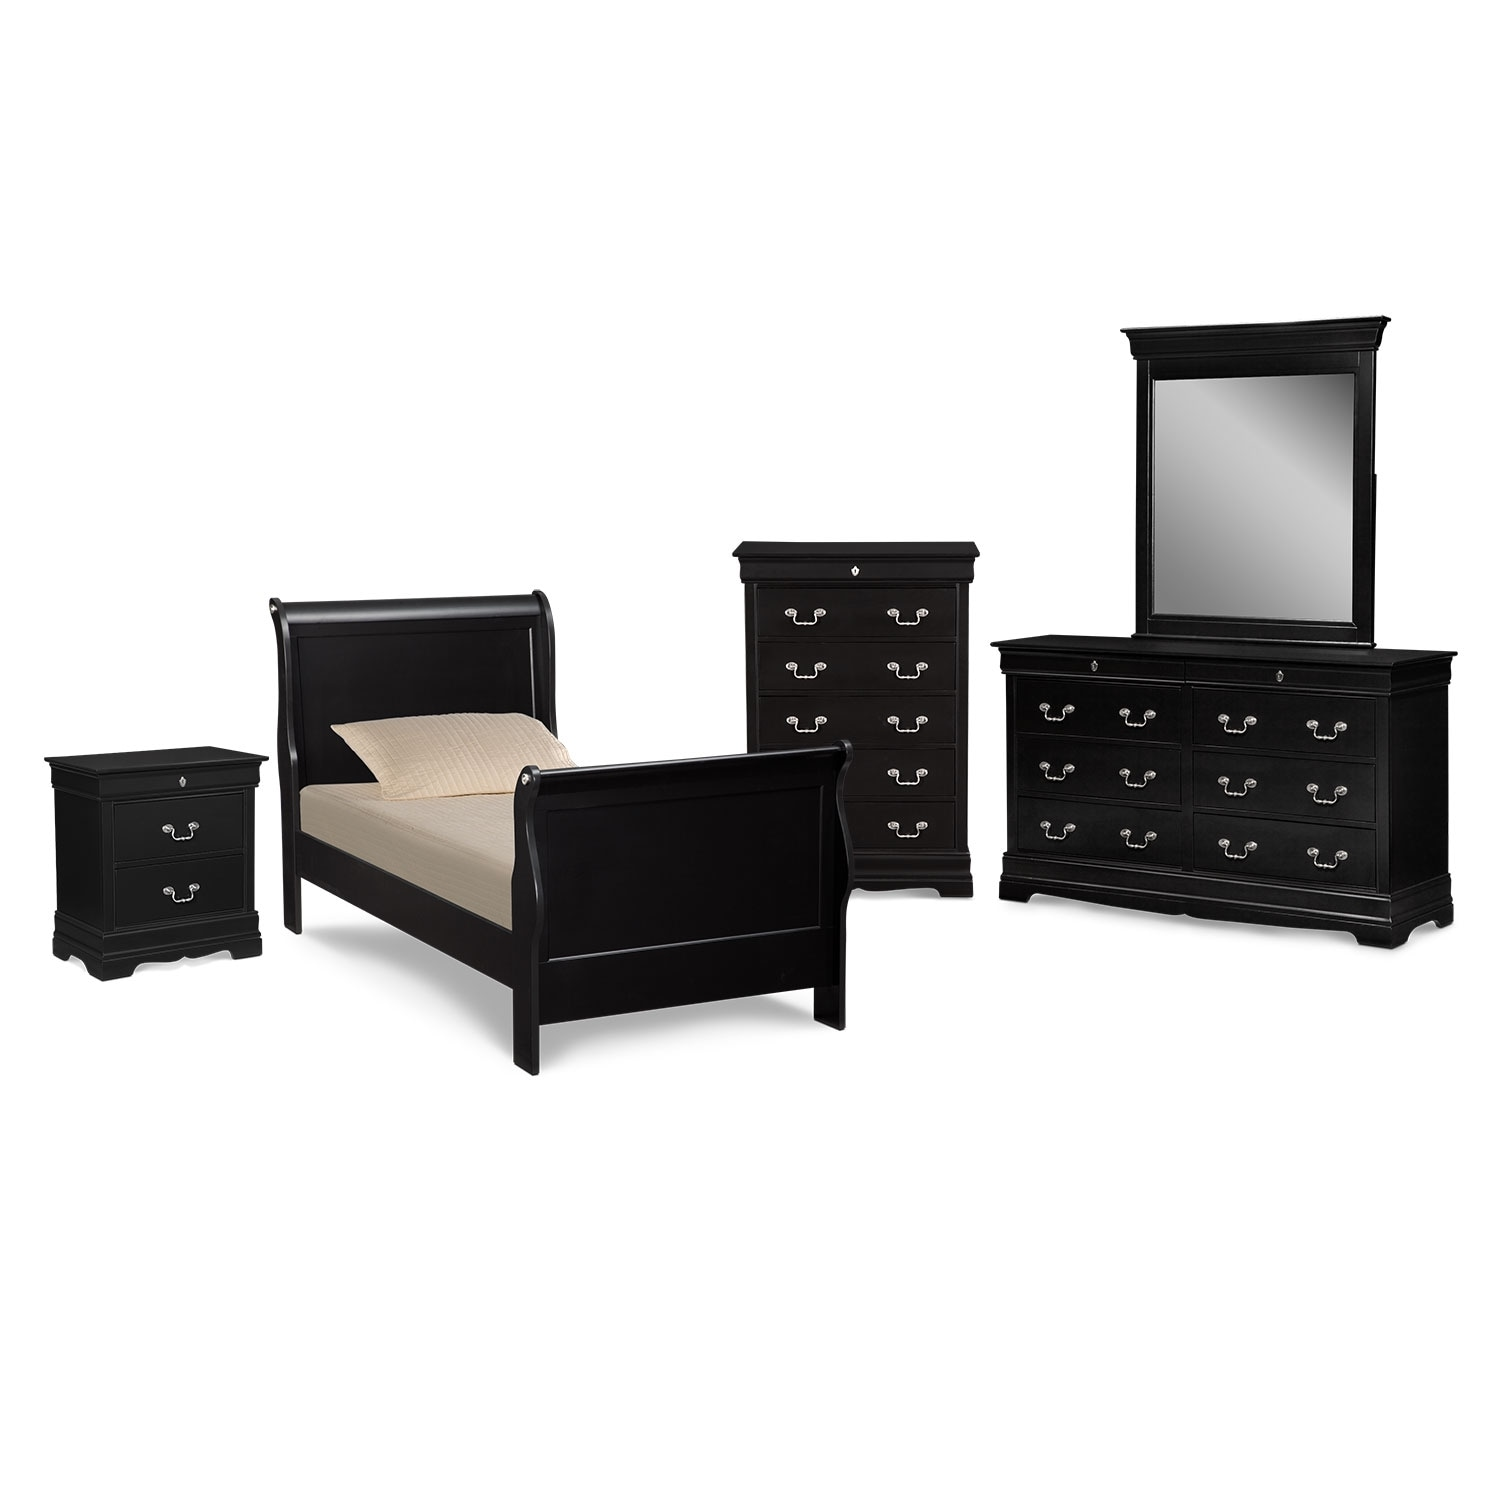 Neo Classic Youth 7-Piece Full Bedroom Set - Black